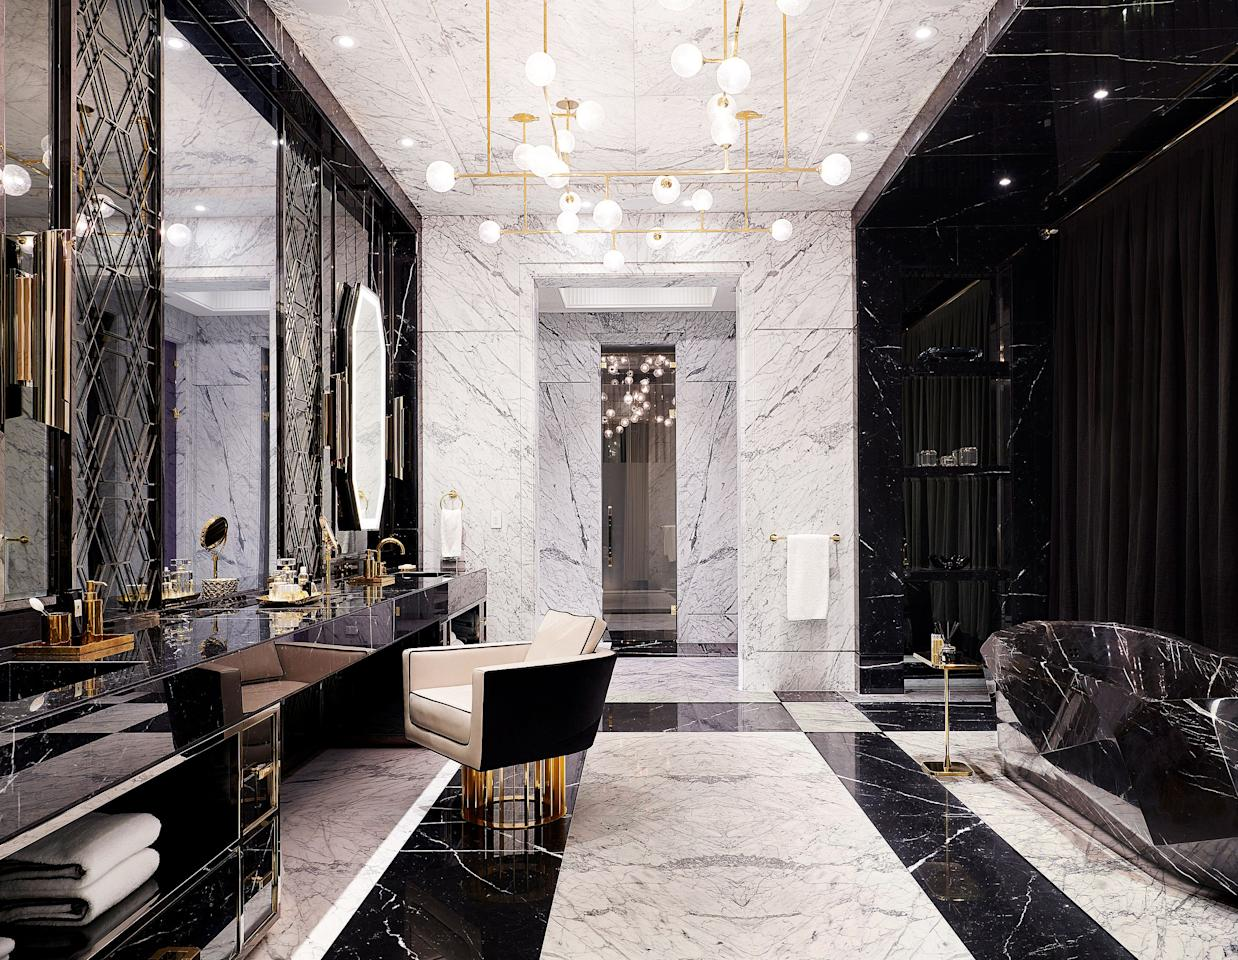 "The master bath features a Nero Marquina marble vanity and tub. Custom chandelier by <a href=""https://www.lumifer.us/"">Lumifer</a>; <a href=""https://www.brabbu.com/home/"">Brabbu</a> sconces; chair by <a href=""http://ferrisrafauli.com/"">Rafauli</a>."